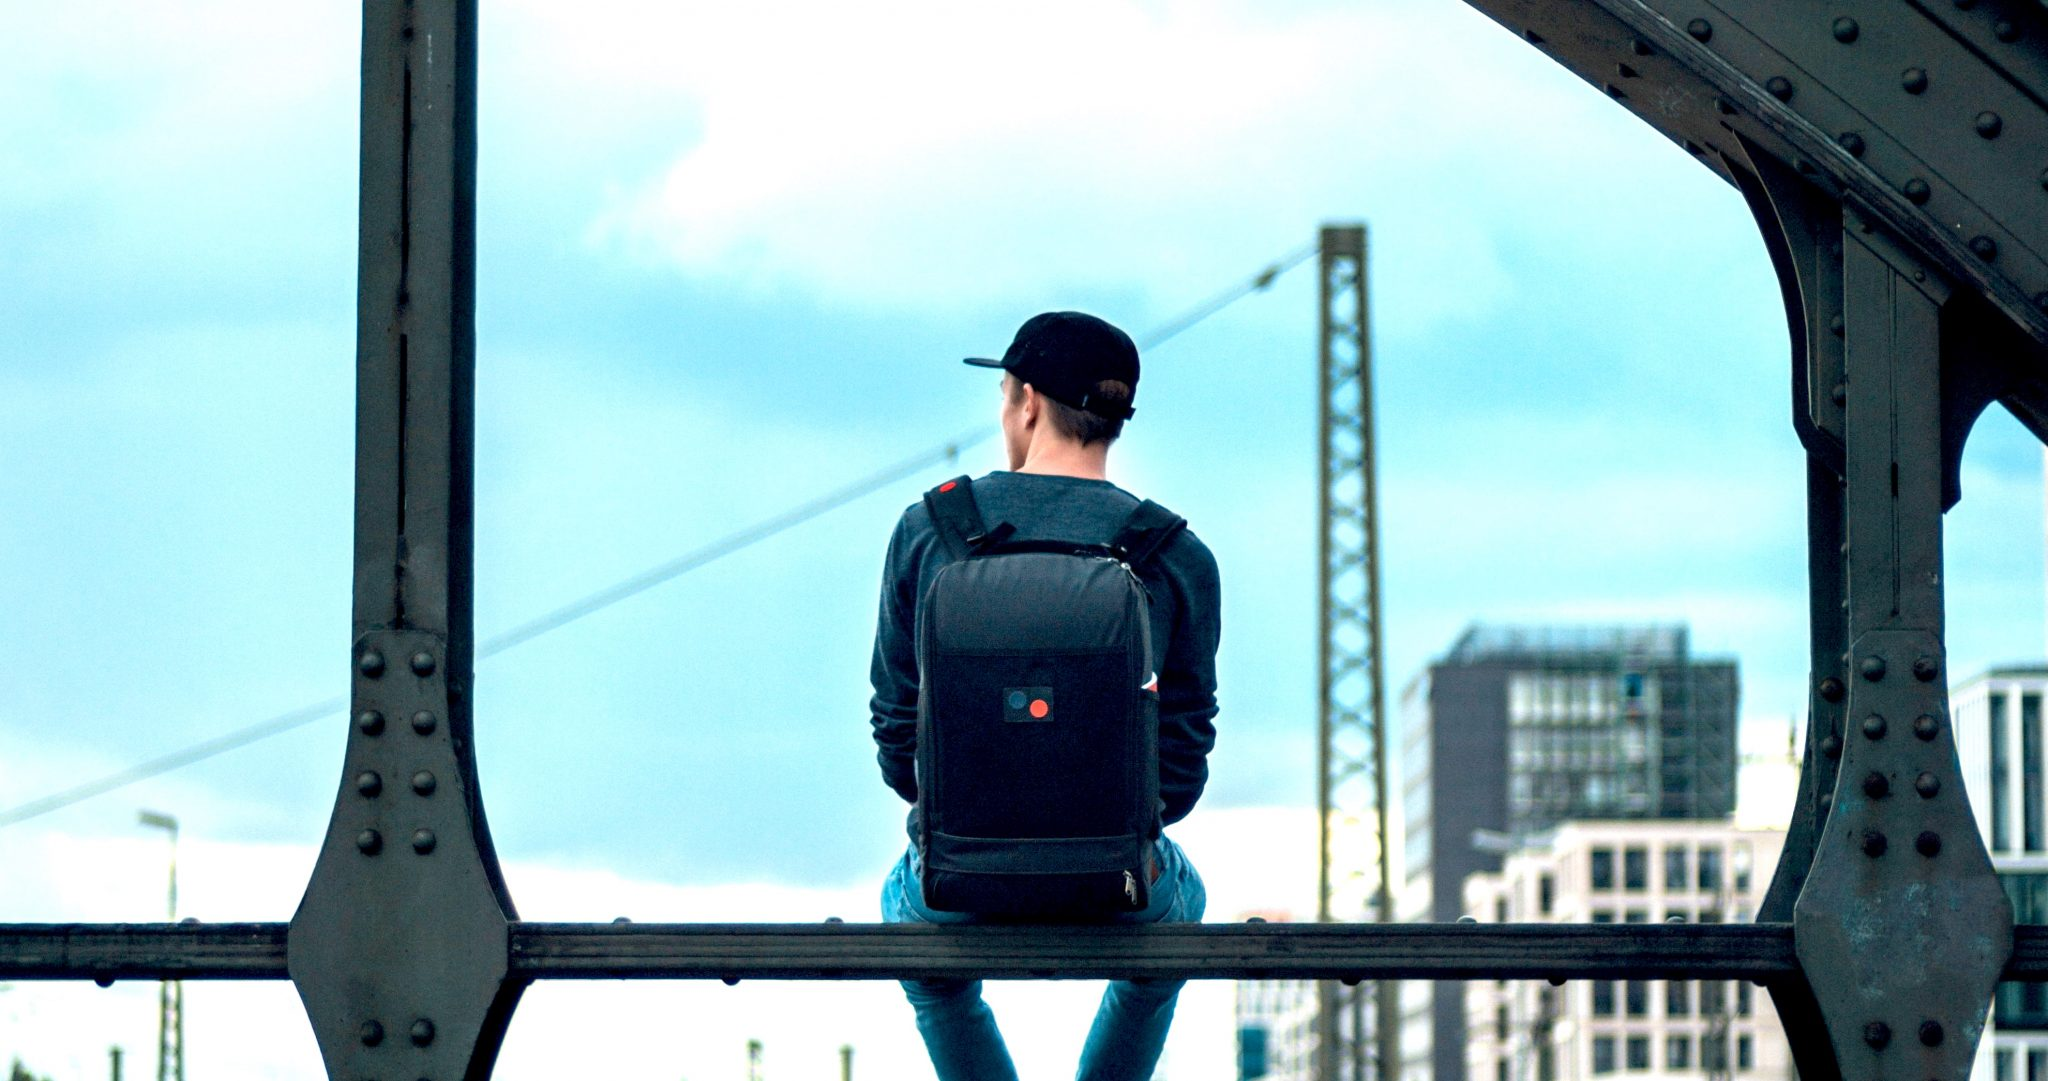 man wearing backpack, sitting on ledge facing out to city